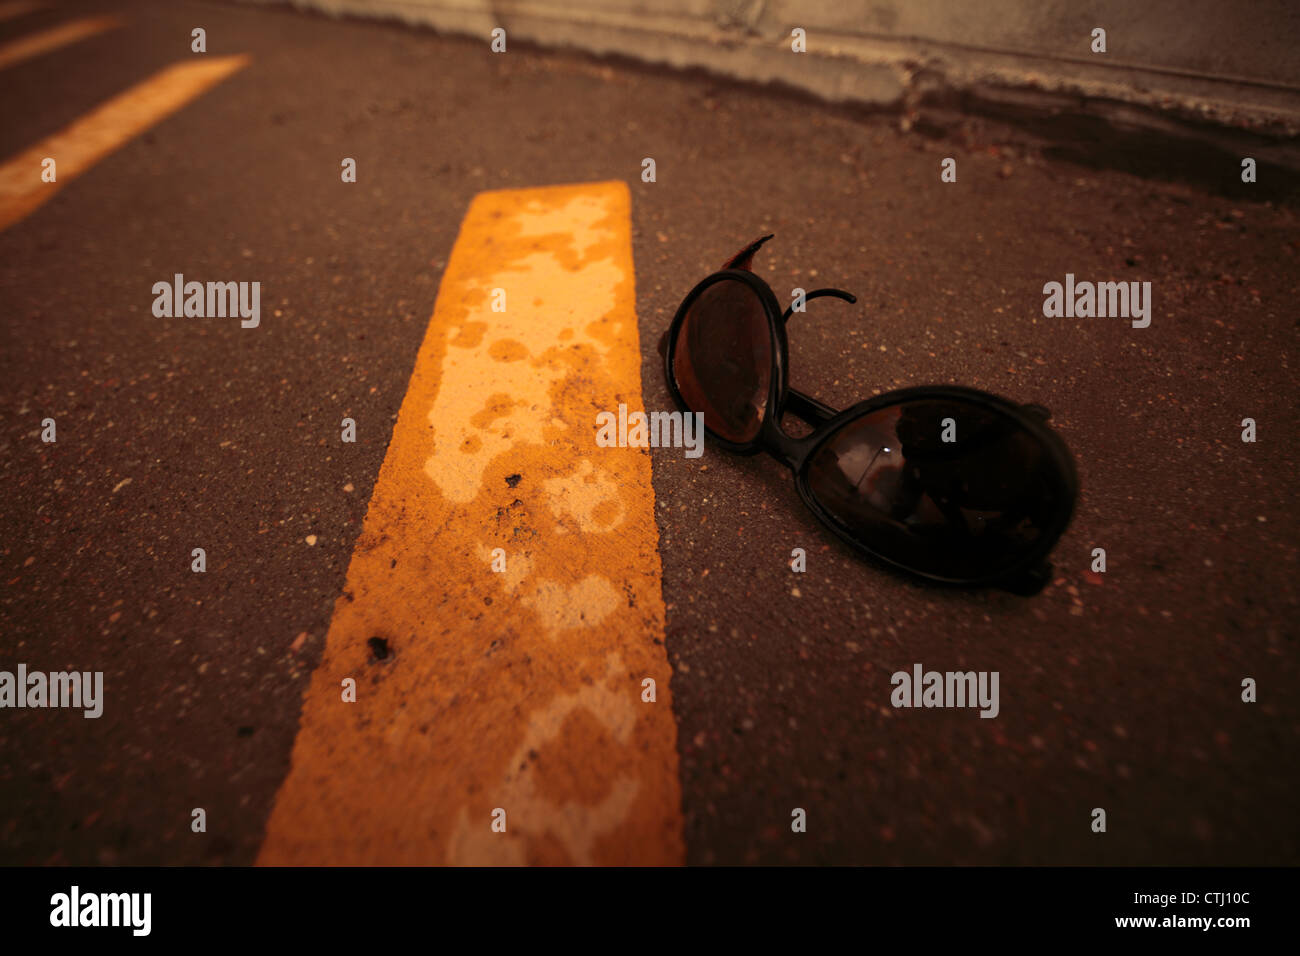 Lit by unearthly orange light from a storm which wet the paving, a pair of sunglasses next to a parking stripe. - Stock Image